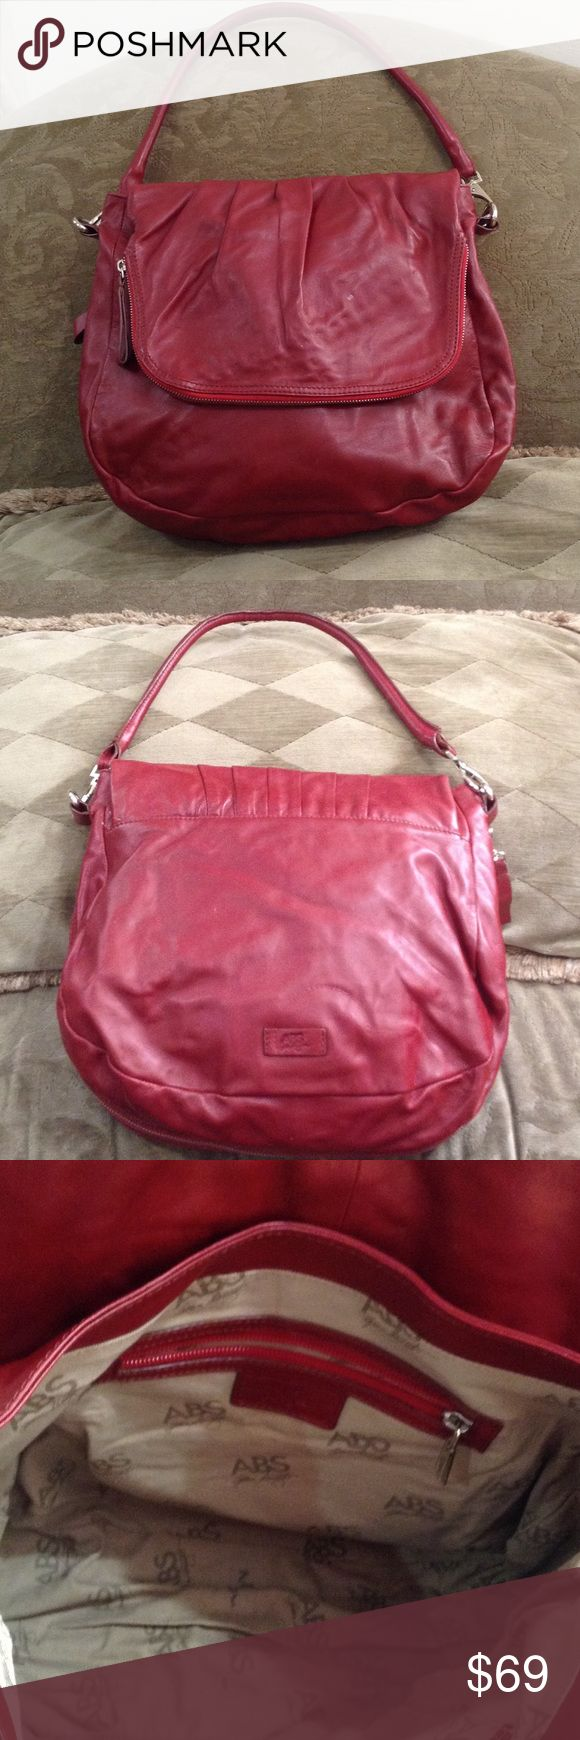 ABS Allen Schwartz  Red Leather Bag Beautiful soft red leather with tons of room. It even has a zipper that allows it to expand if needed. In wonderful condition ABS Allen Schwartz Bags Shoulder Bags